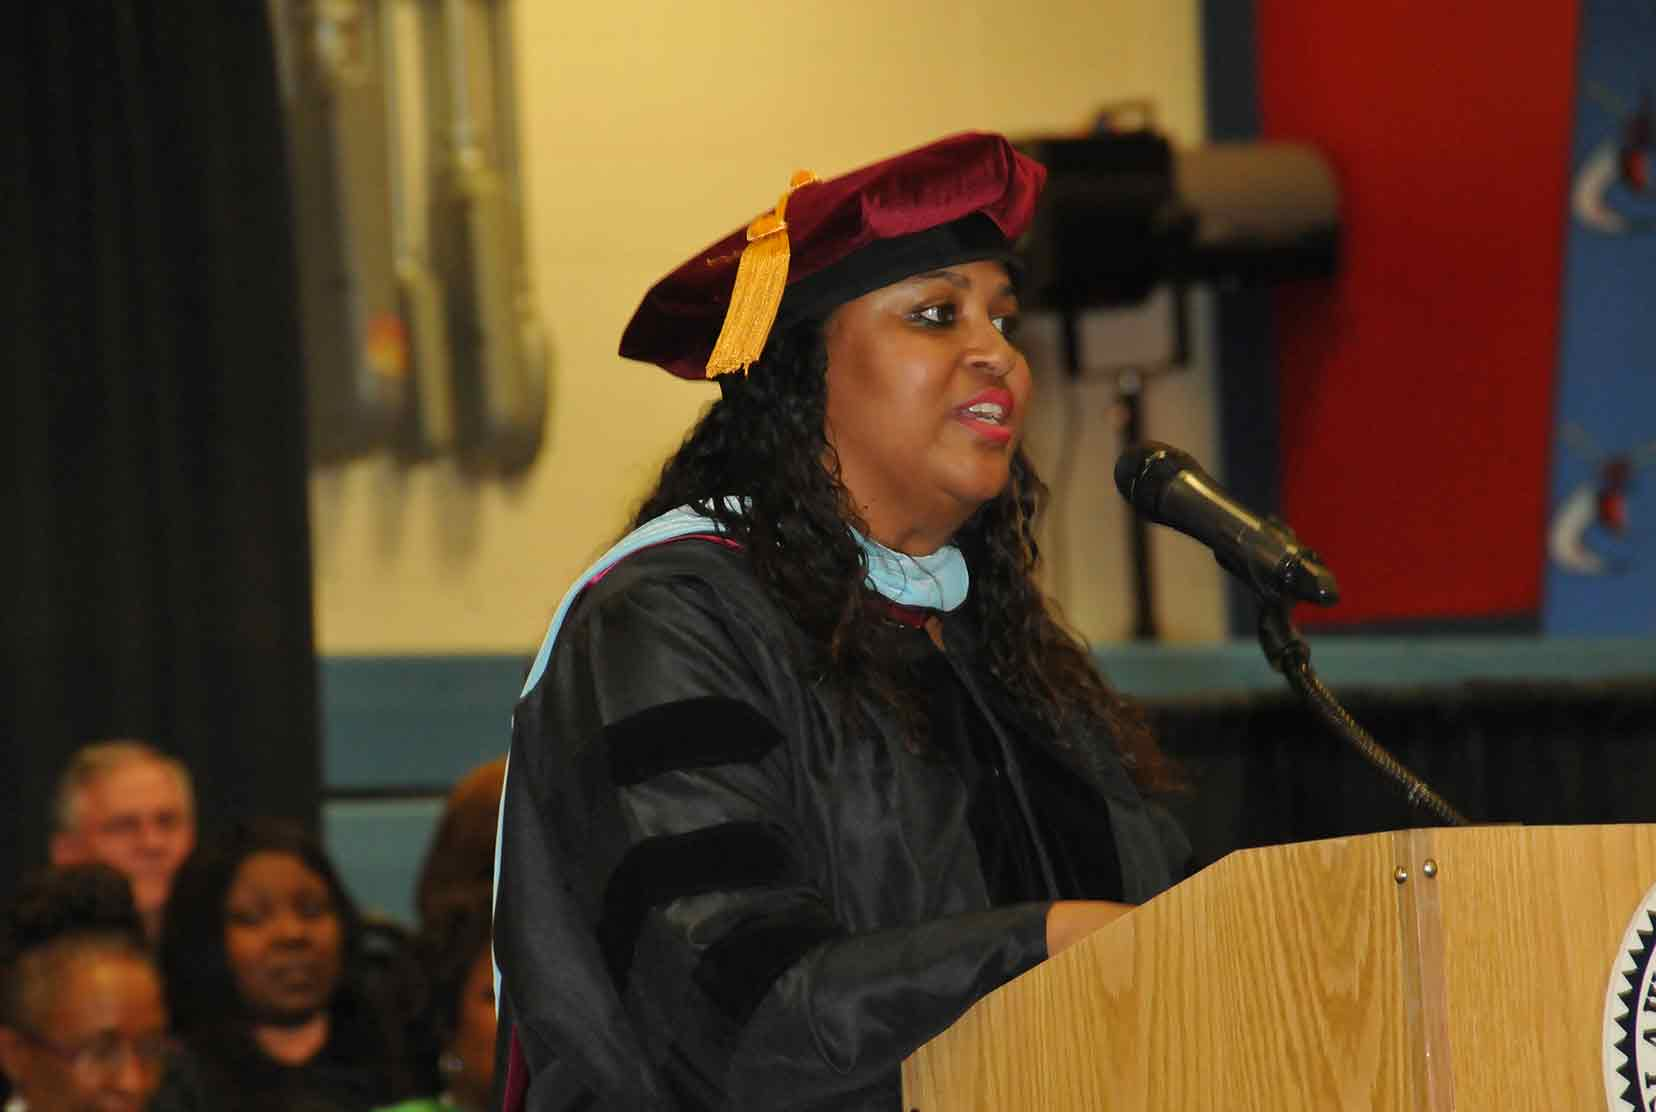 Dr. Evelyn Edney, Director of the University's Early College High School, shown here speaking at the school's first graduation ceremony in 2018, has been named as the 2021 Delaware Principal of the Year by the National Association of Secondary School Principals.